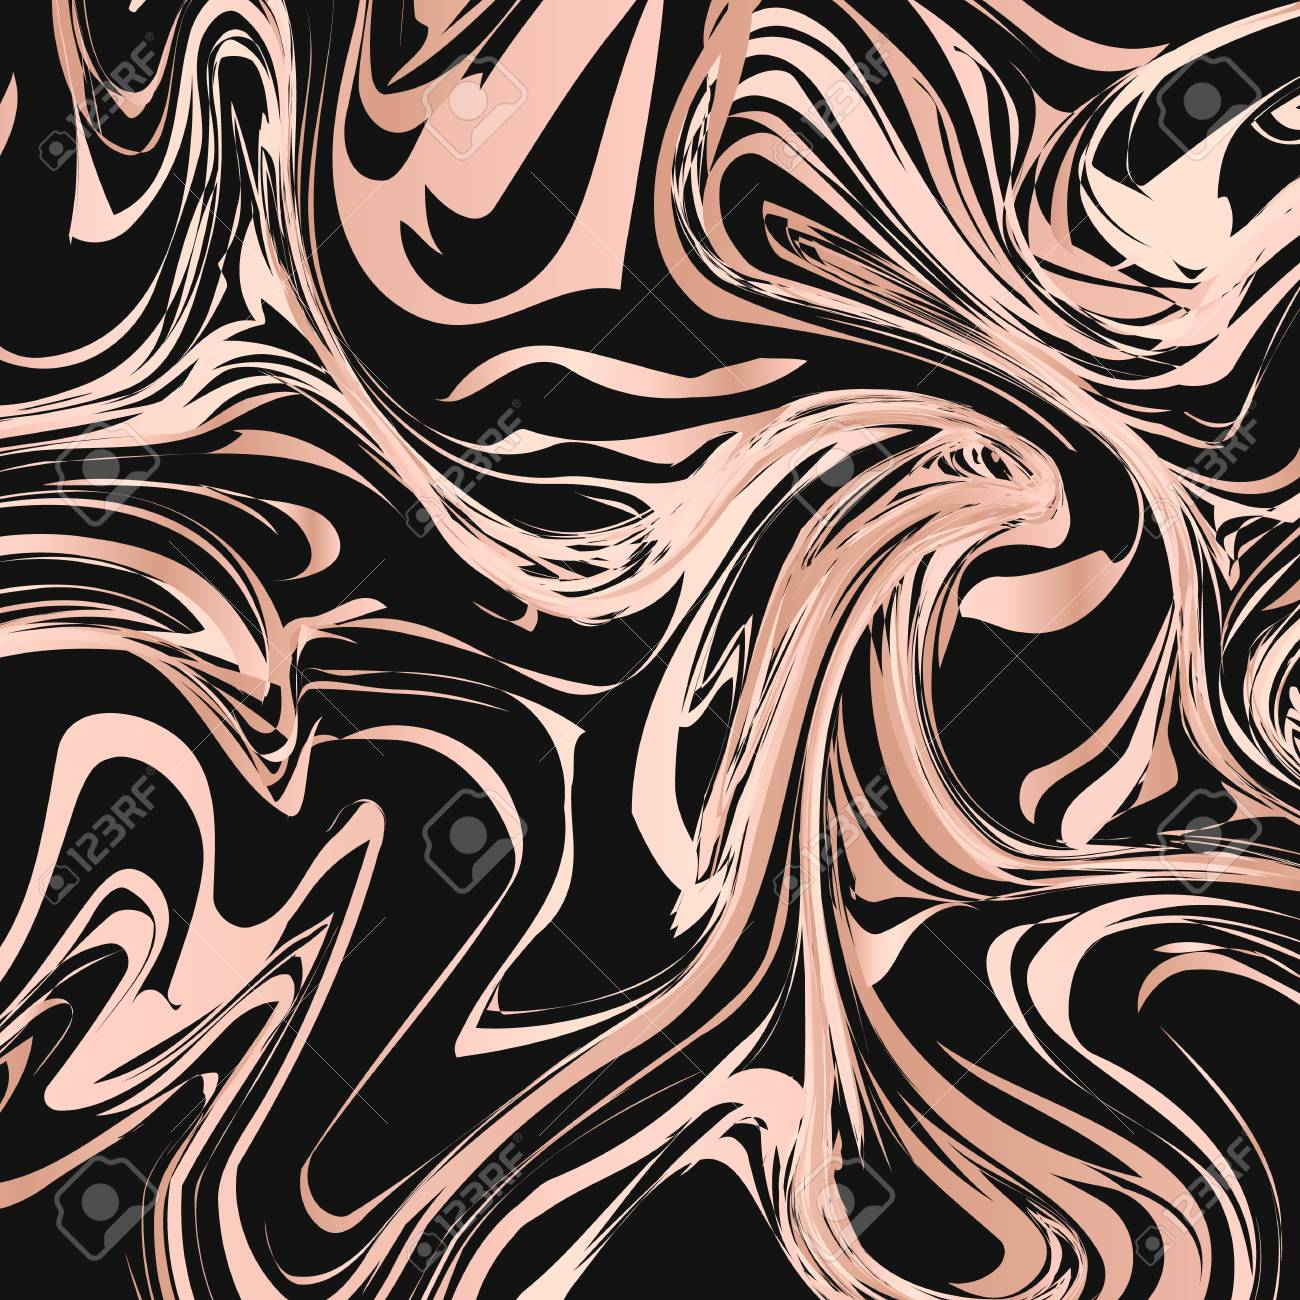 Liquid Flow Effect Abstract Background Black And Rose Gold Marble Royalty Free Cliparts Vectors And Stock Illustration Image 127098681